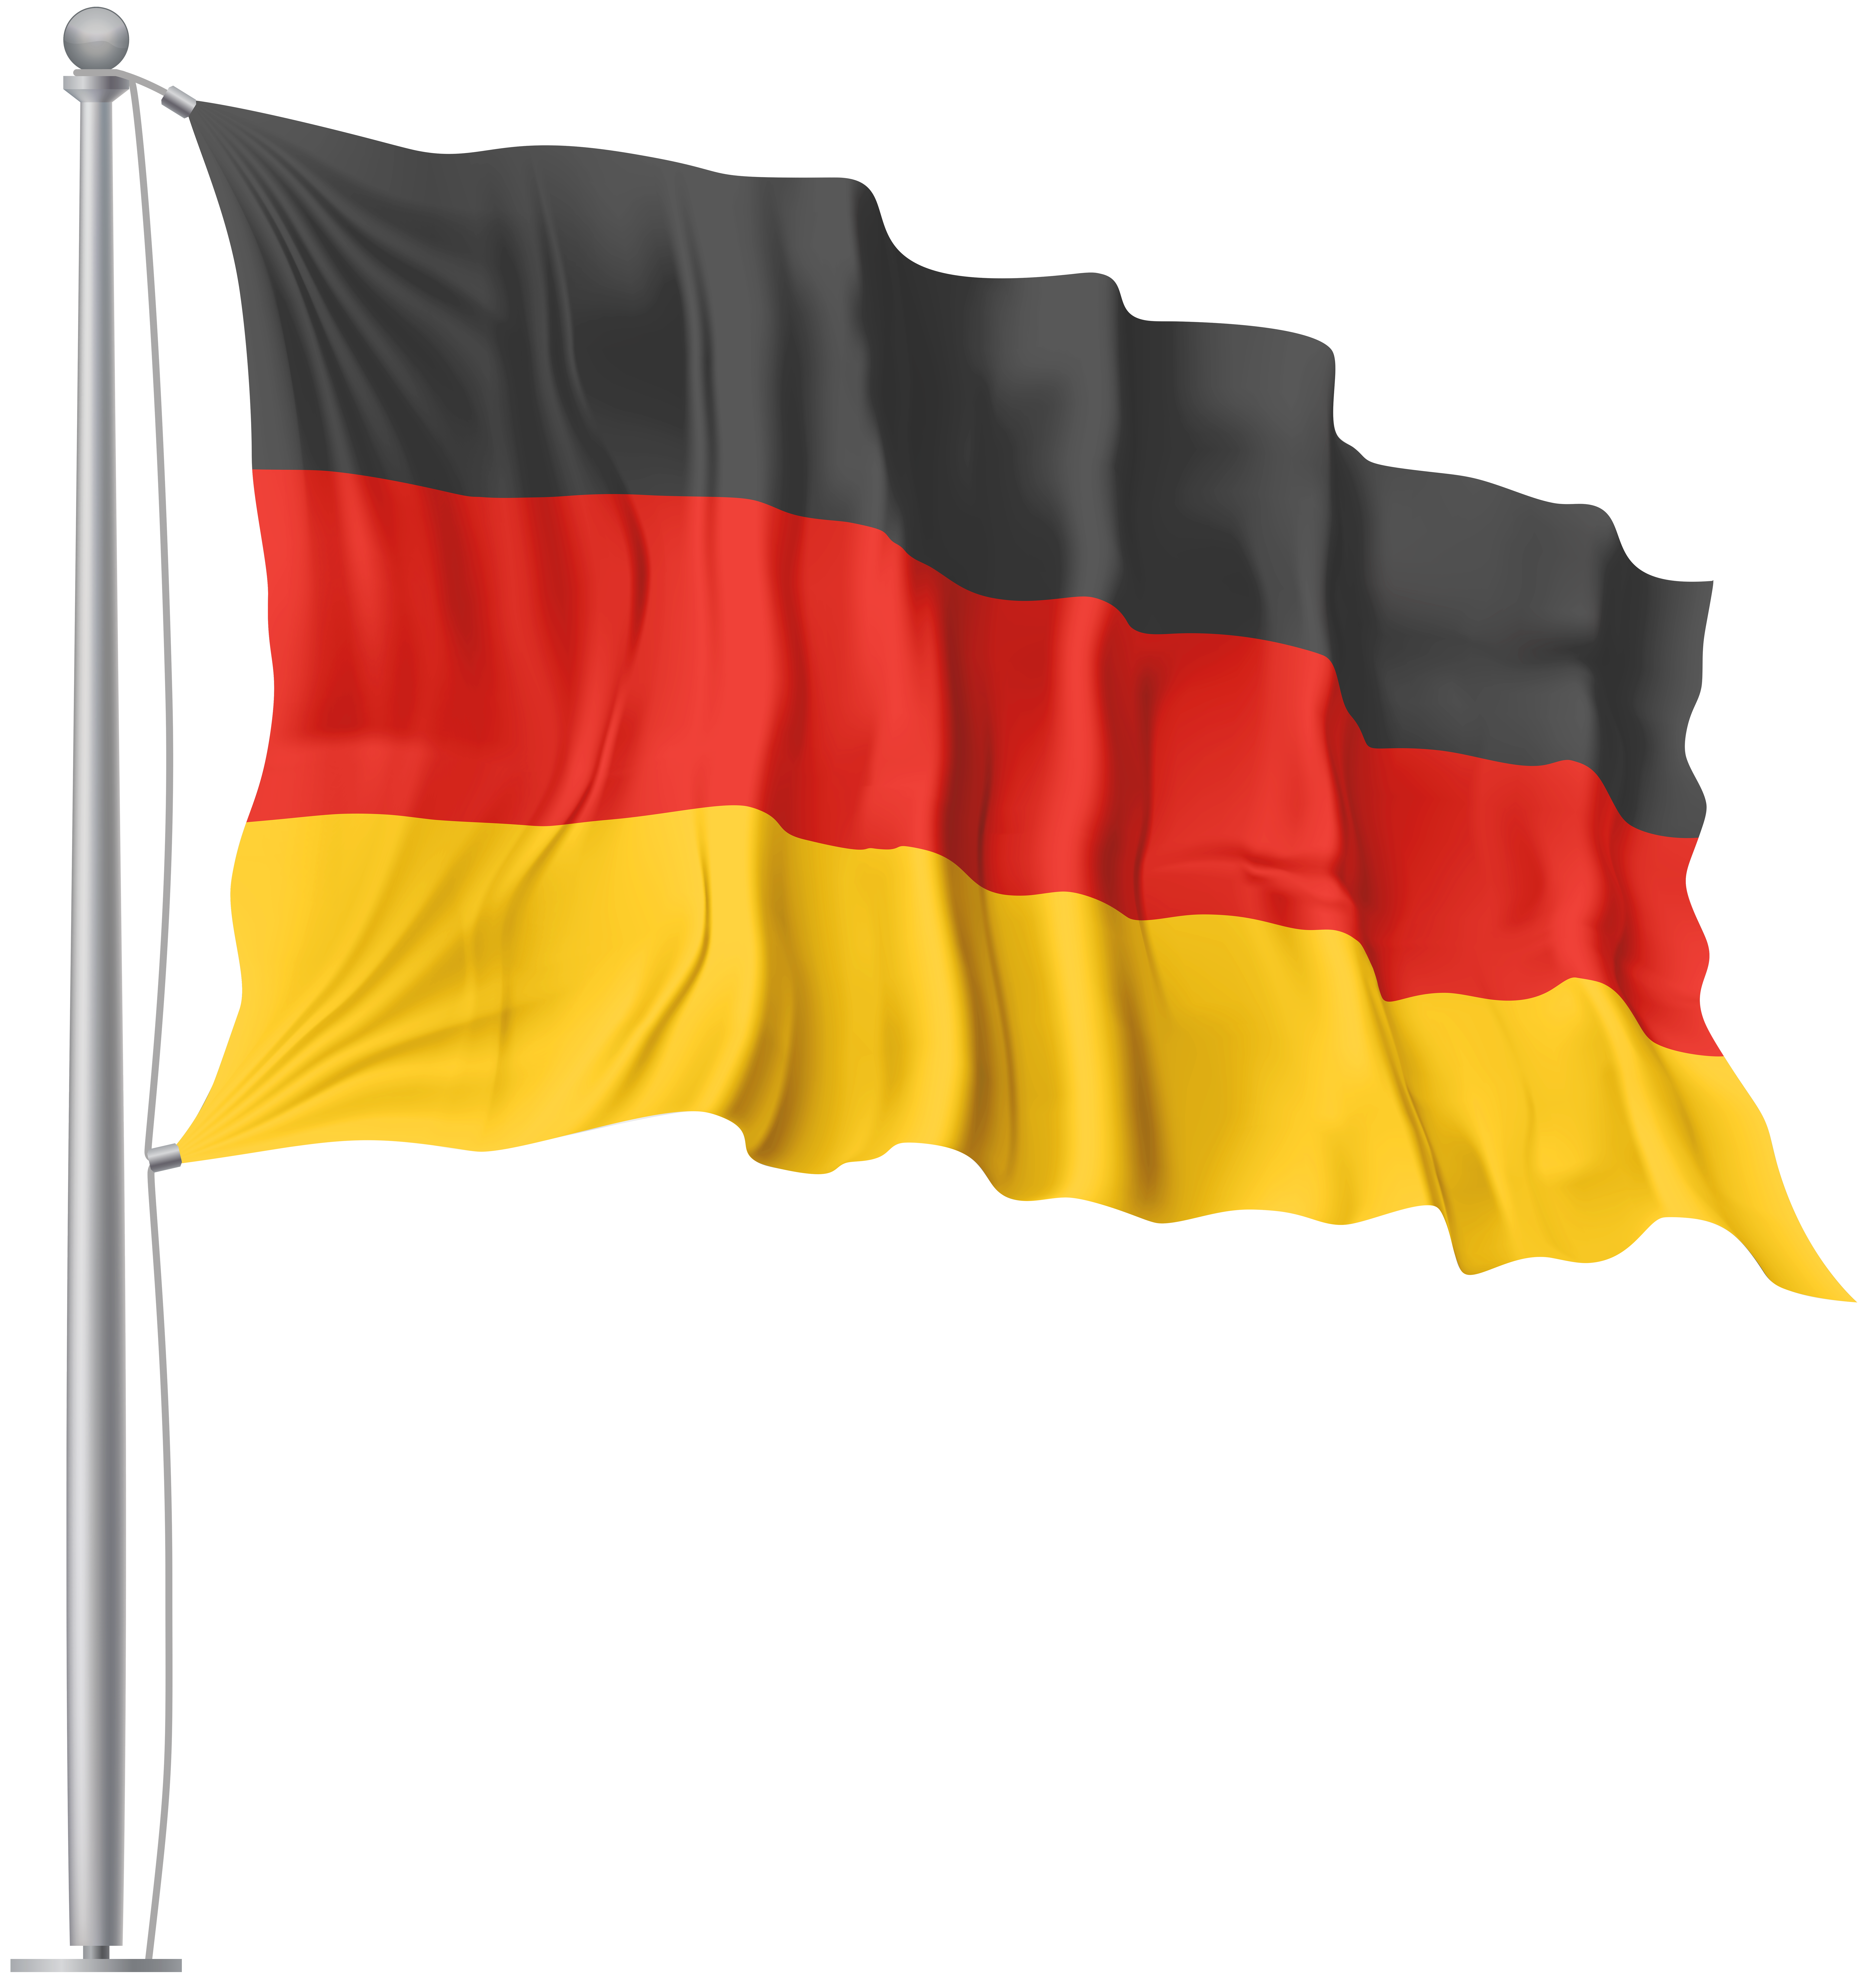 Waving flag png image. Germany clipart yellow